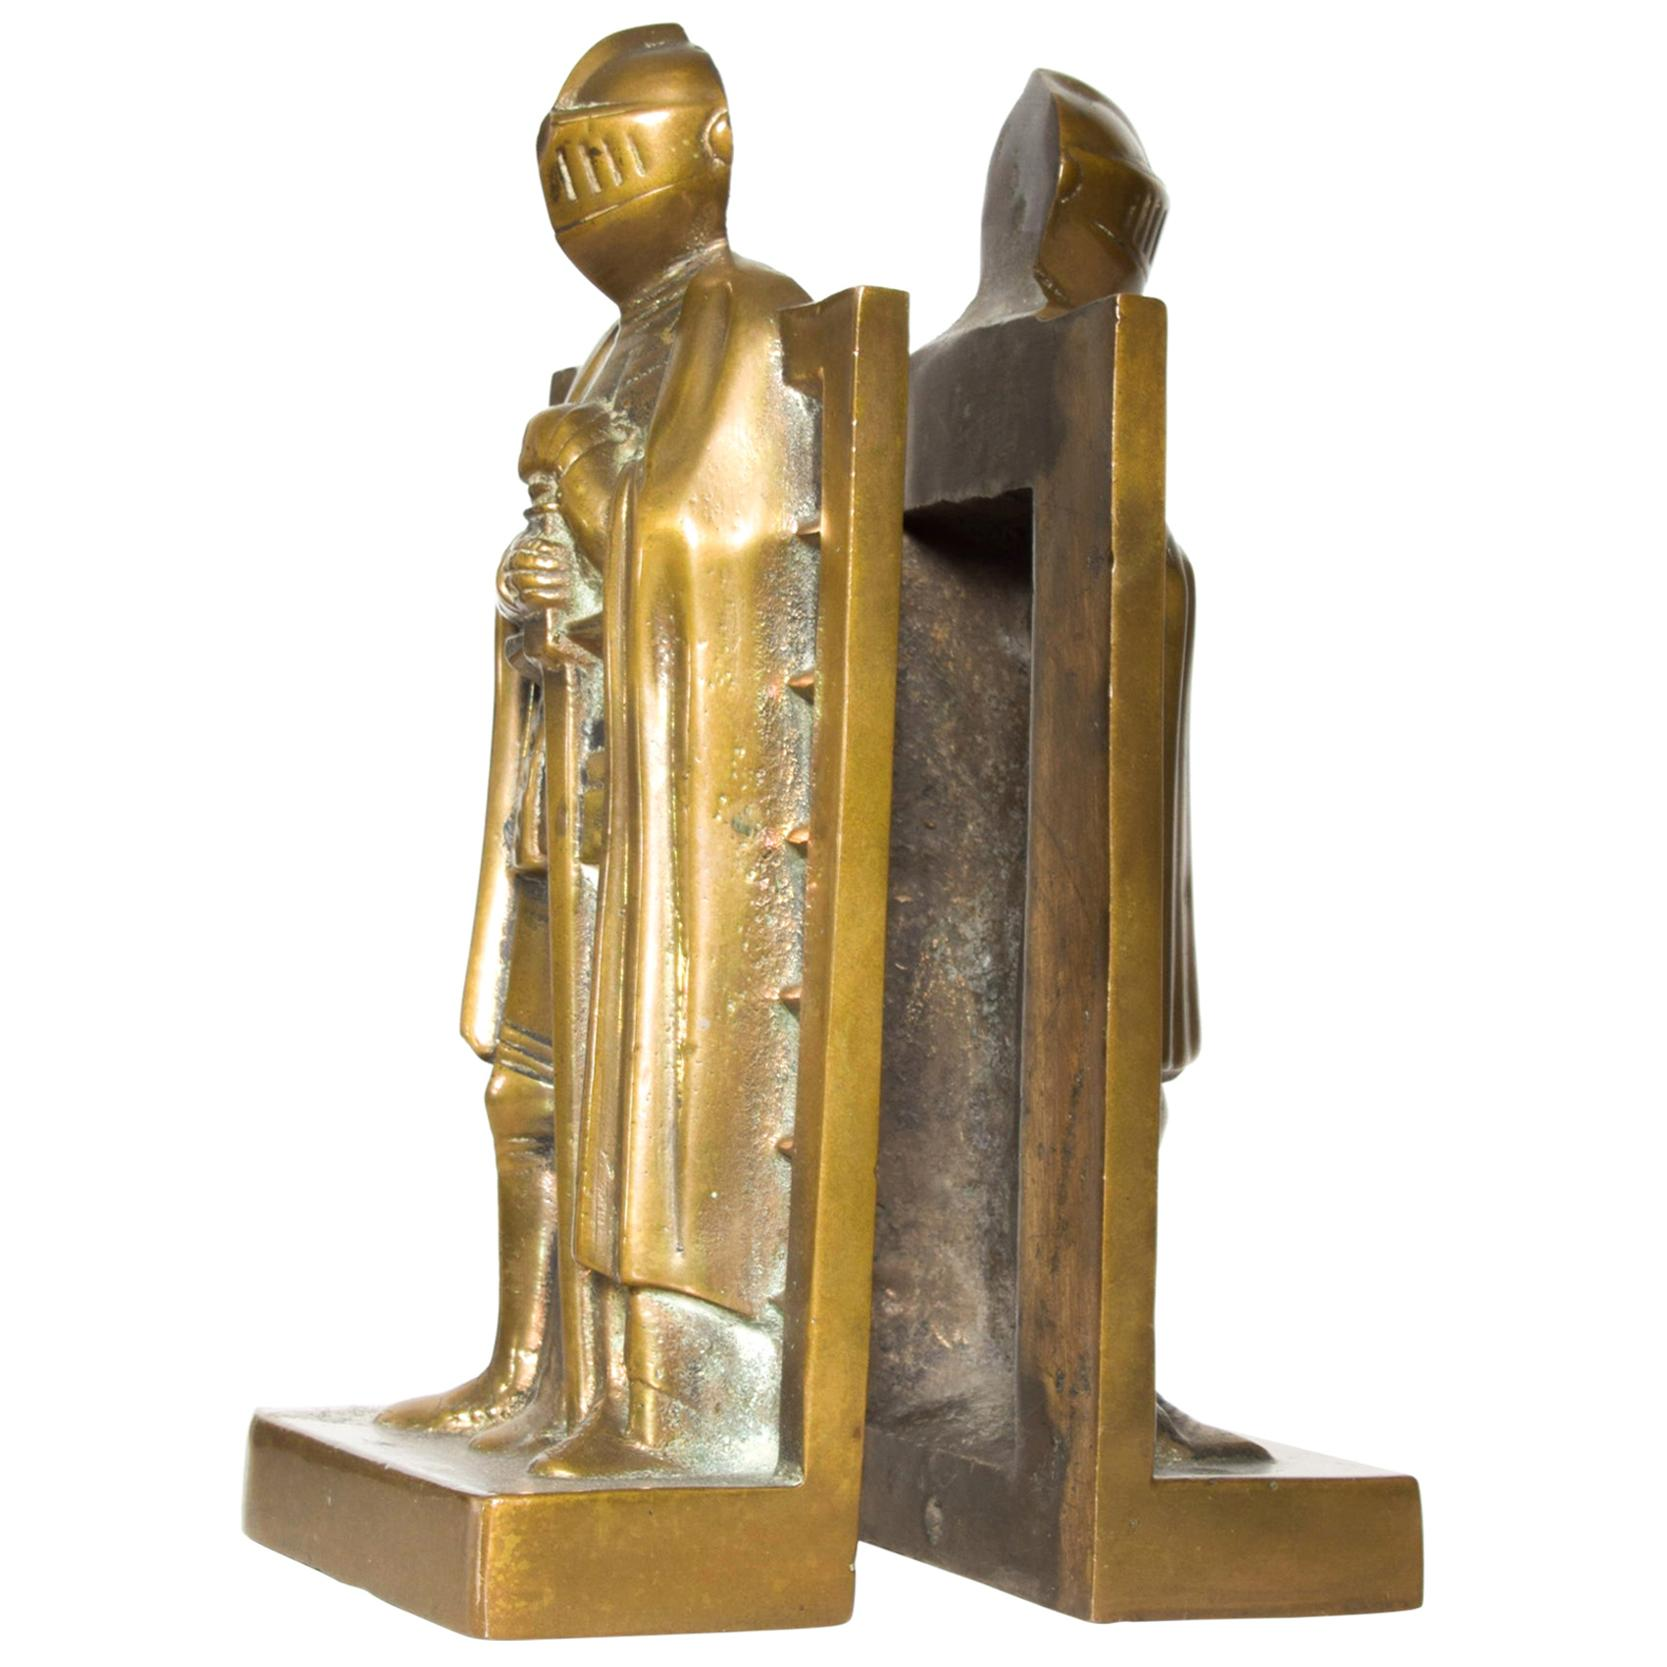 Art Deco Medieval Robed Knight Shining Armor Bookends Sculptural Solid Bronze